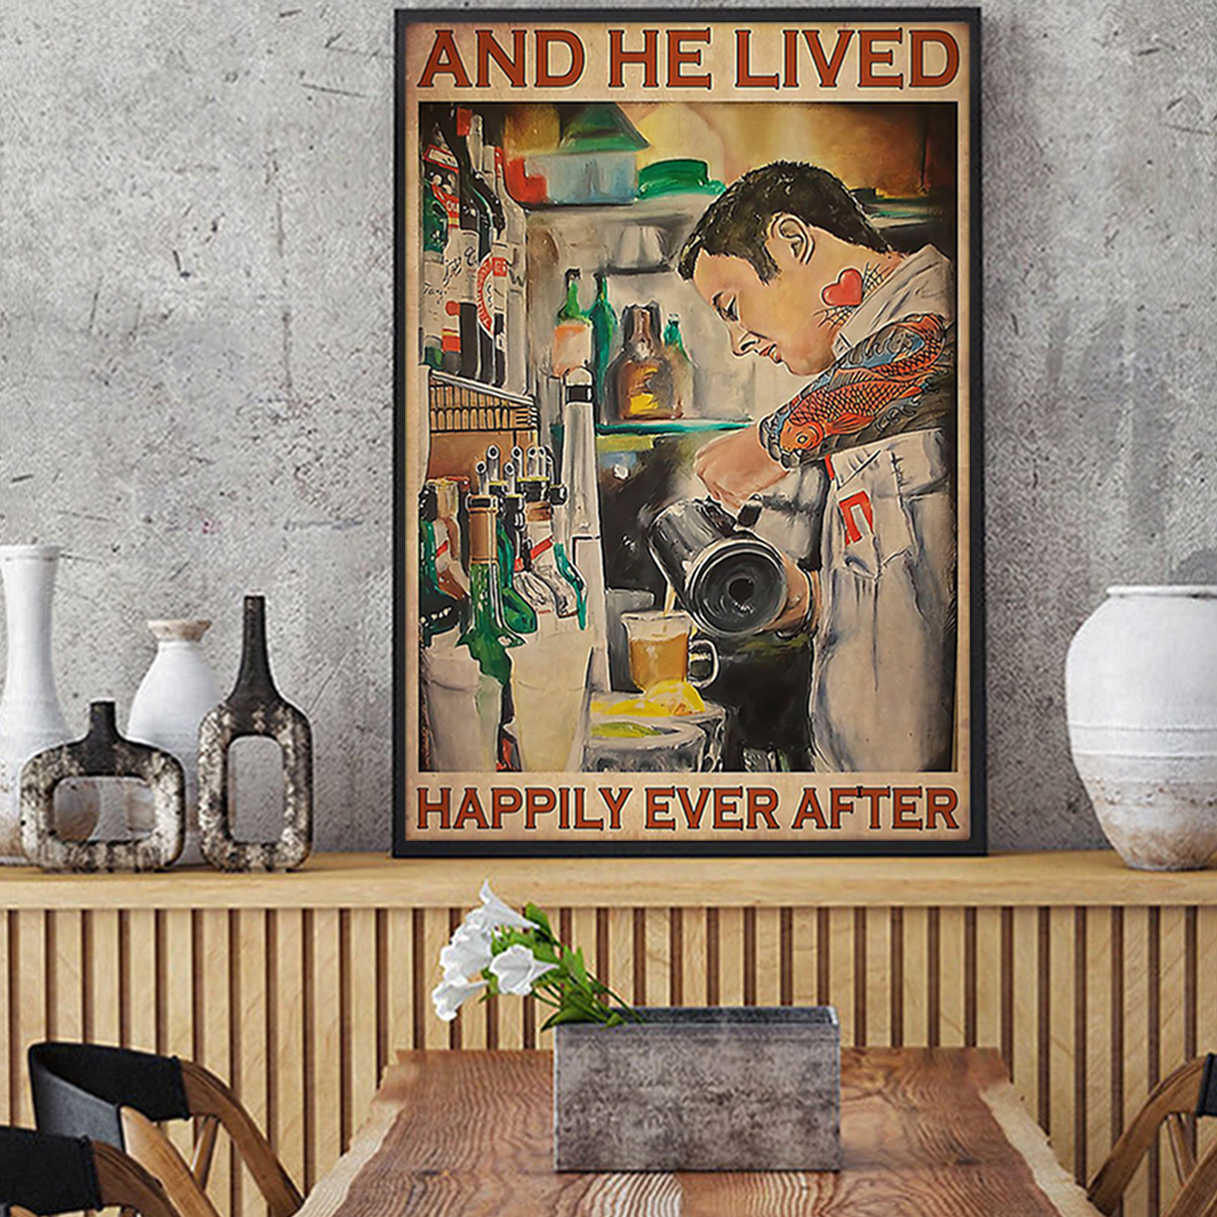 Bartender and he lived happily ever after poster A1